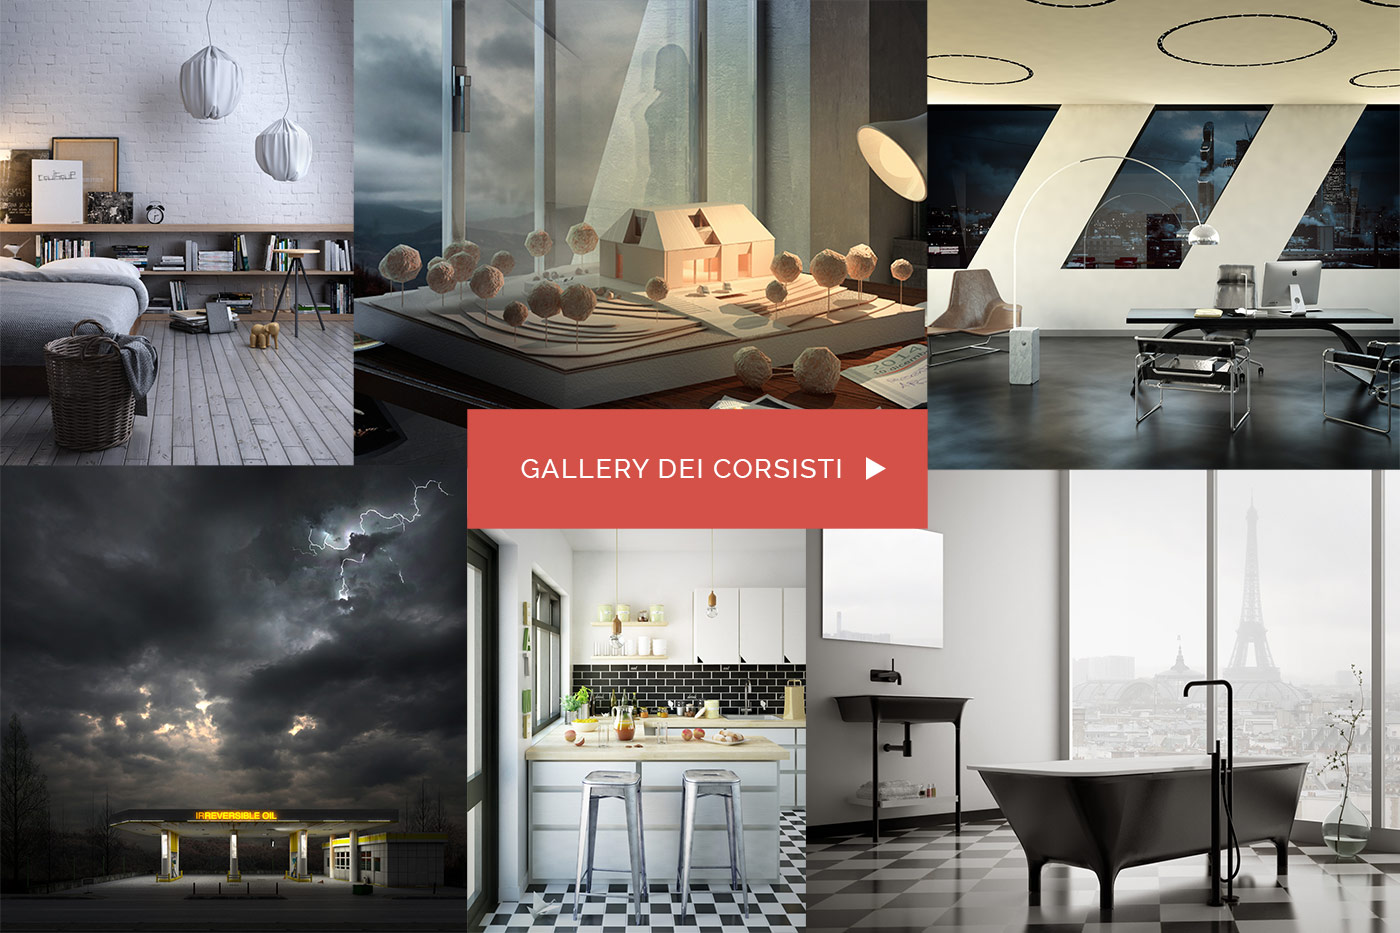 Master Advanced Archviz 2015 - Master in Cinema 4D e Vray per l'architettura e il design